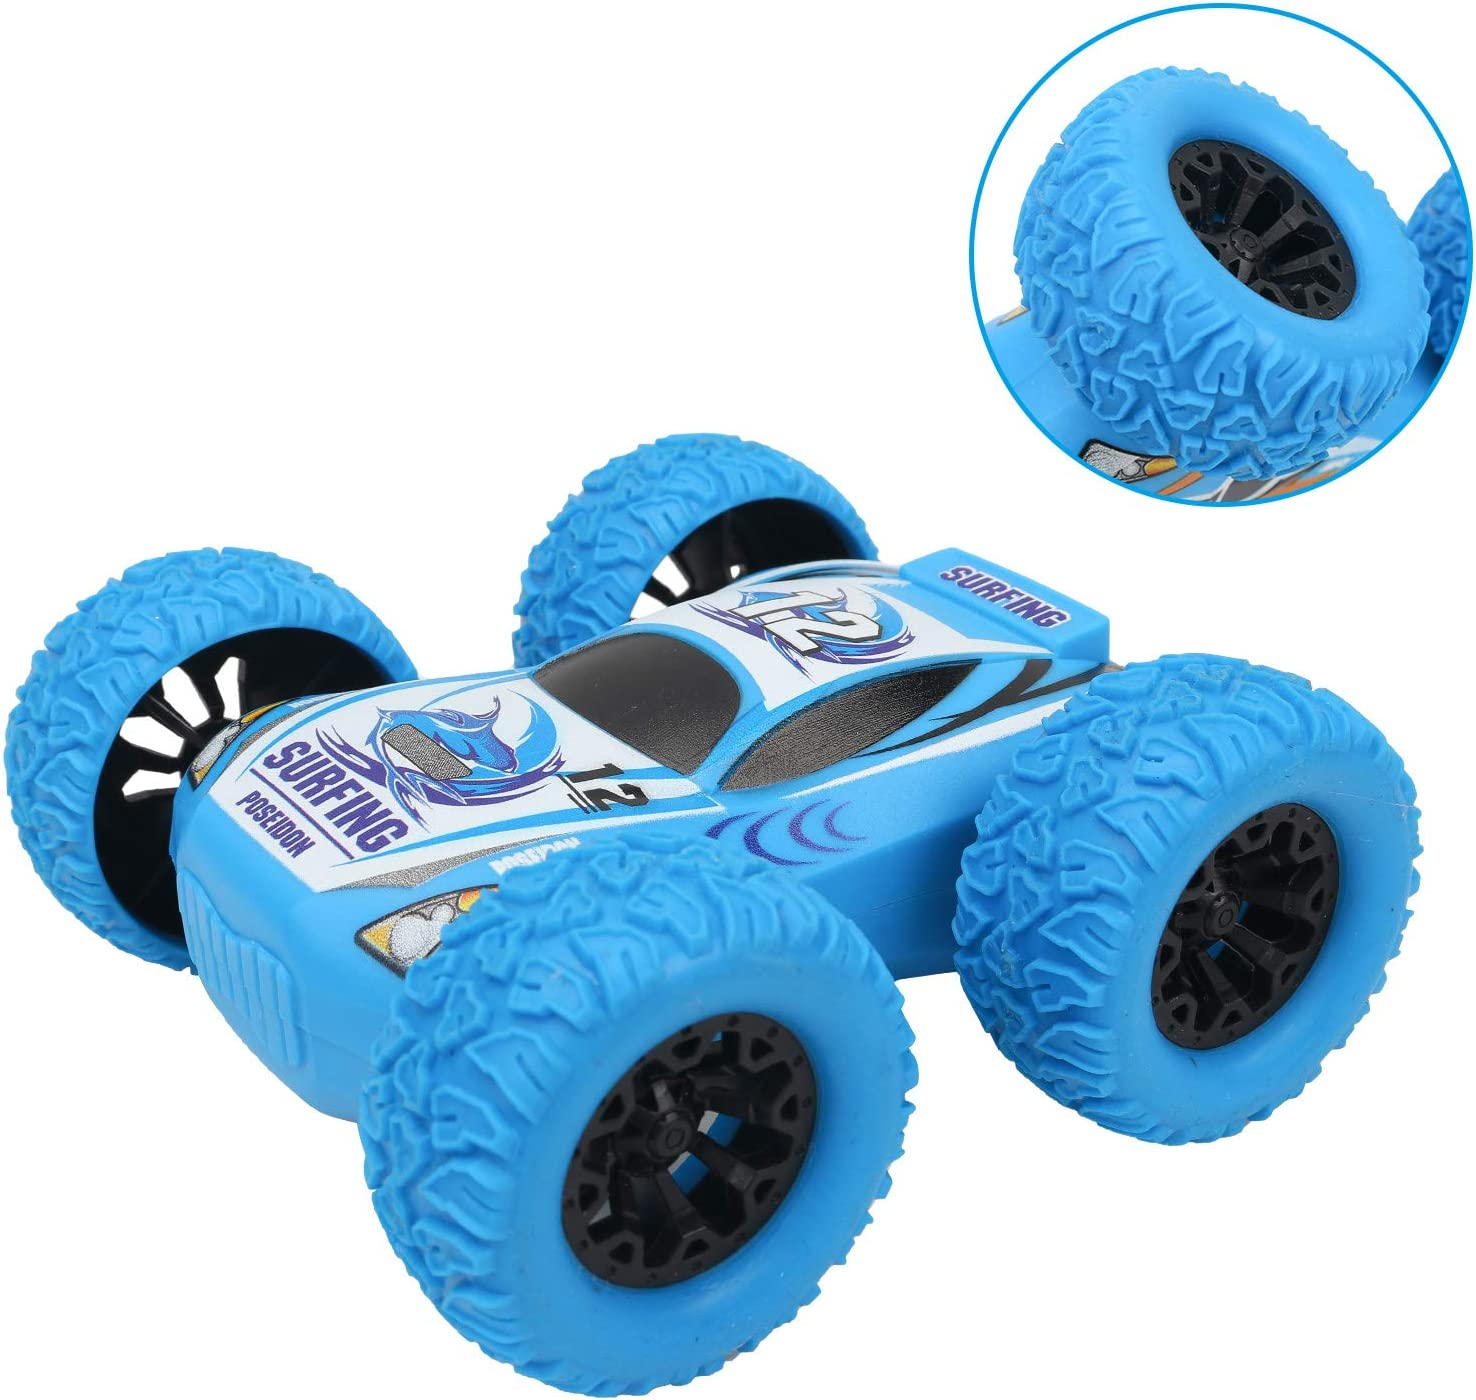 Birthday Party Favors for Kids Boy Gifts for 3 4 5 6 7 8 9 10 Year Old Boys Baby Car Push and Go Toy Cars for Toddlers Kids 2 Pack Friction Powered Car Toys